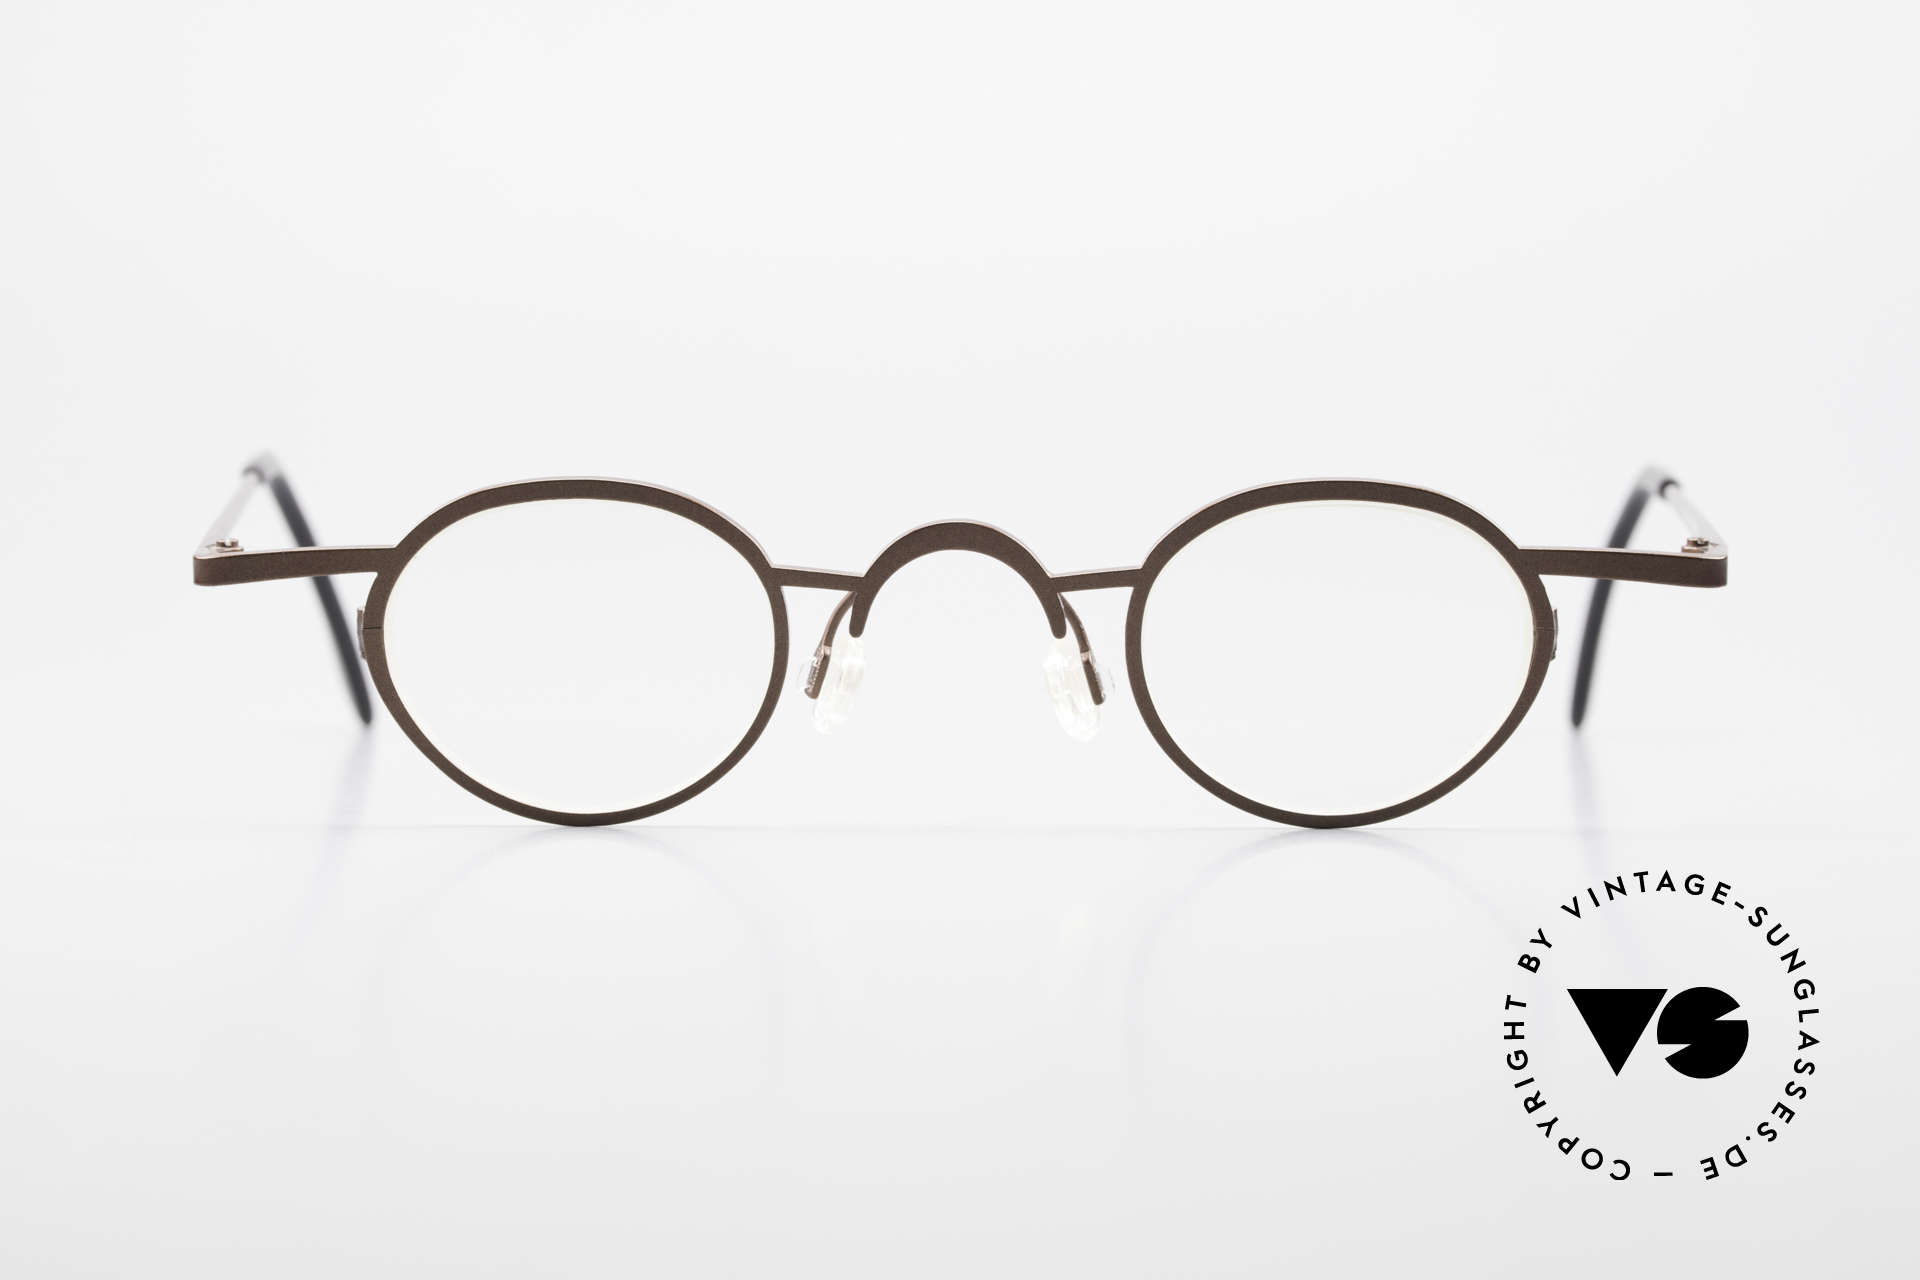 Theo Belgium Pat Avant-Garde Vintage Specs 90s, founded in 1989 as 'opposite pole' to the 'mainstream', Made for Men and Women